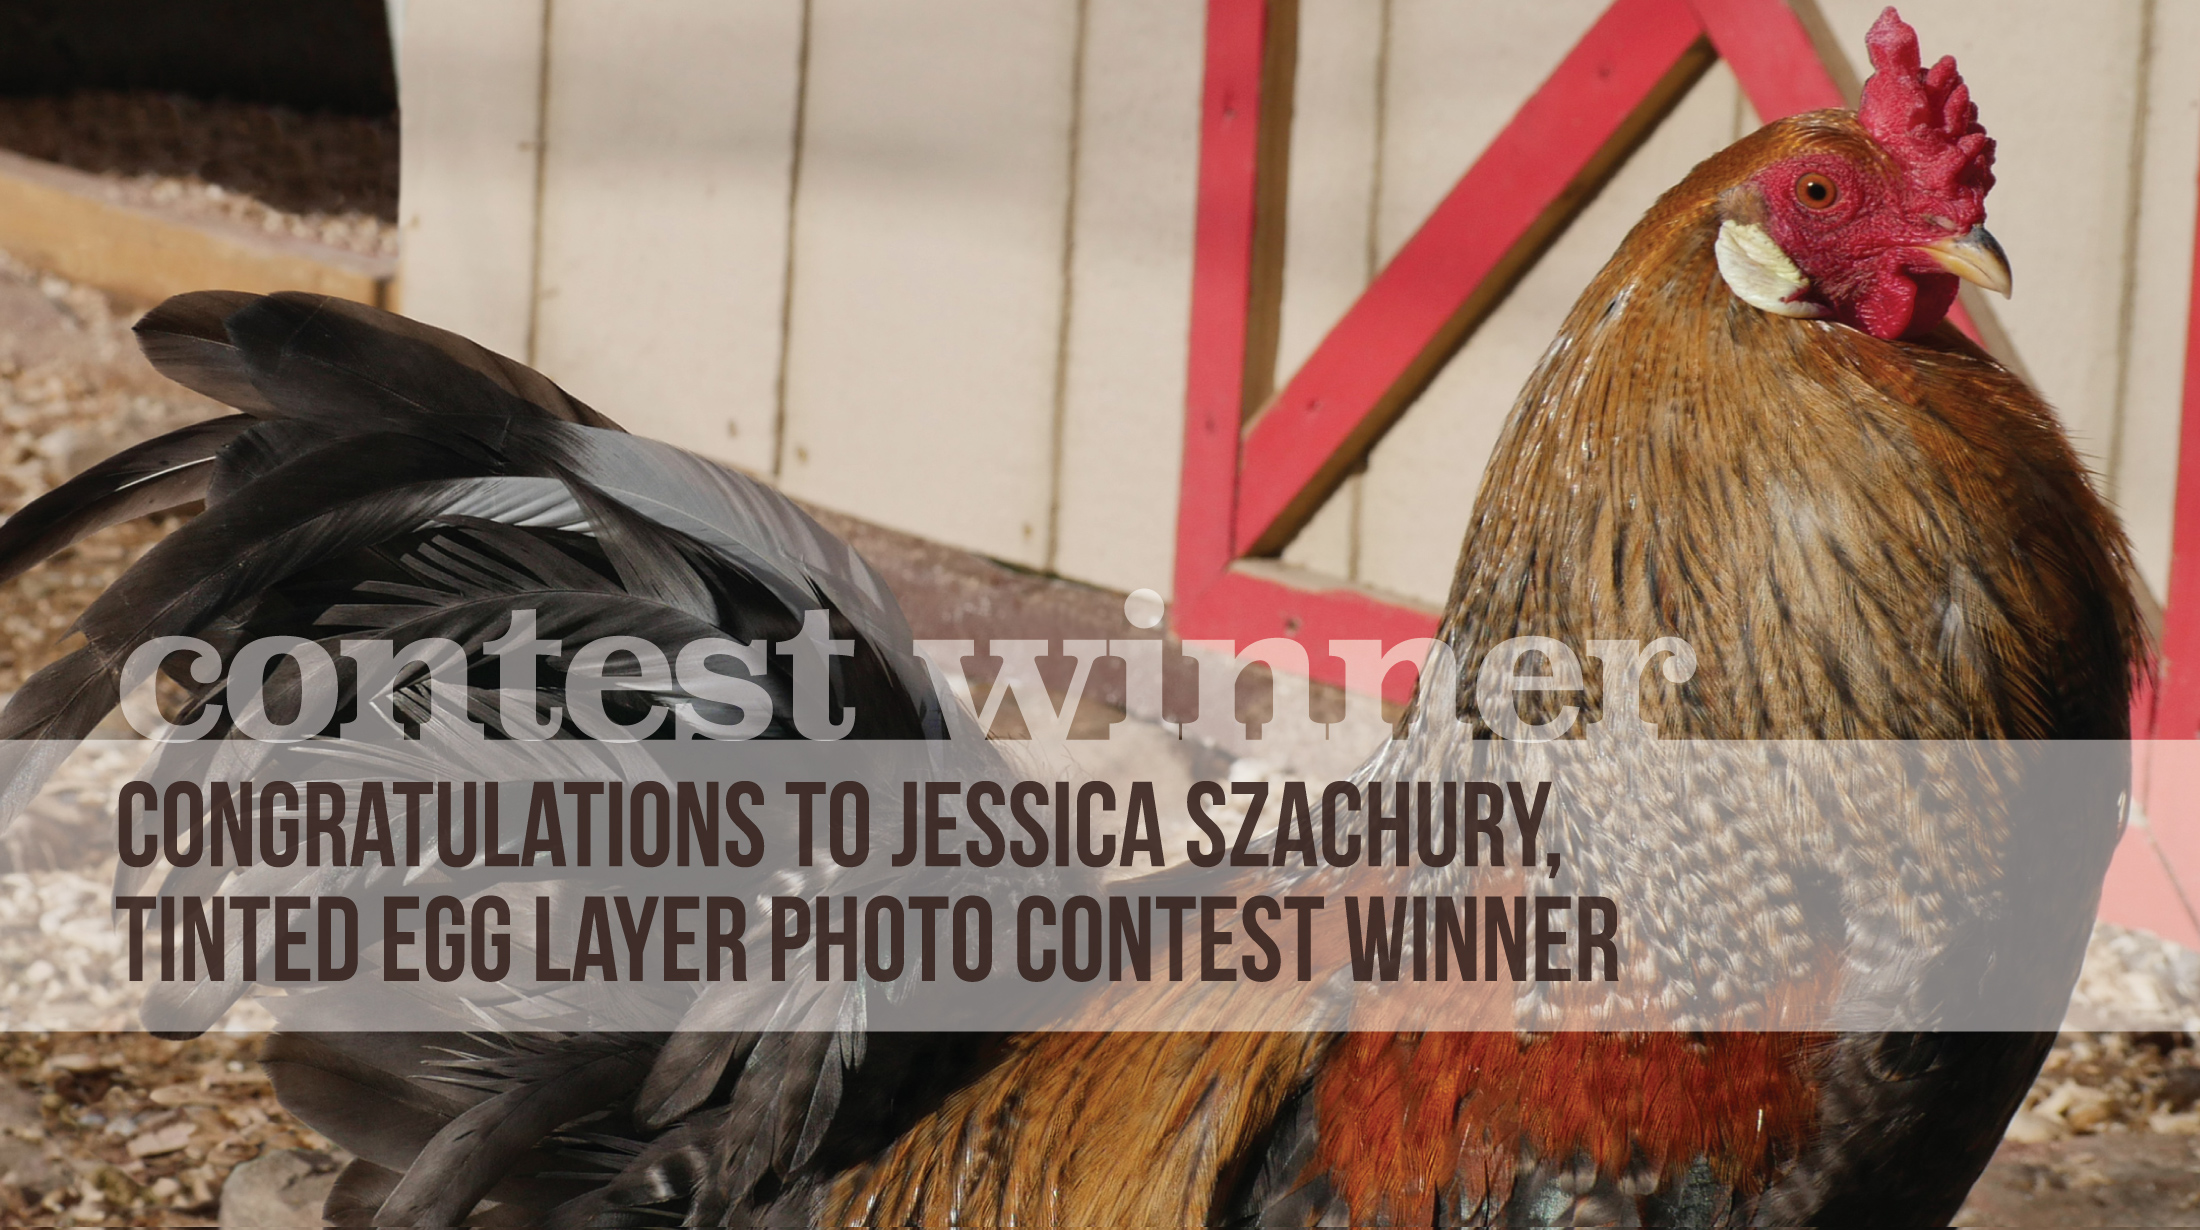 McMurray Hatchery | Tinted Egg Layer Contest Winner | Whiting True Blue | Rooster